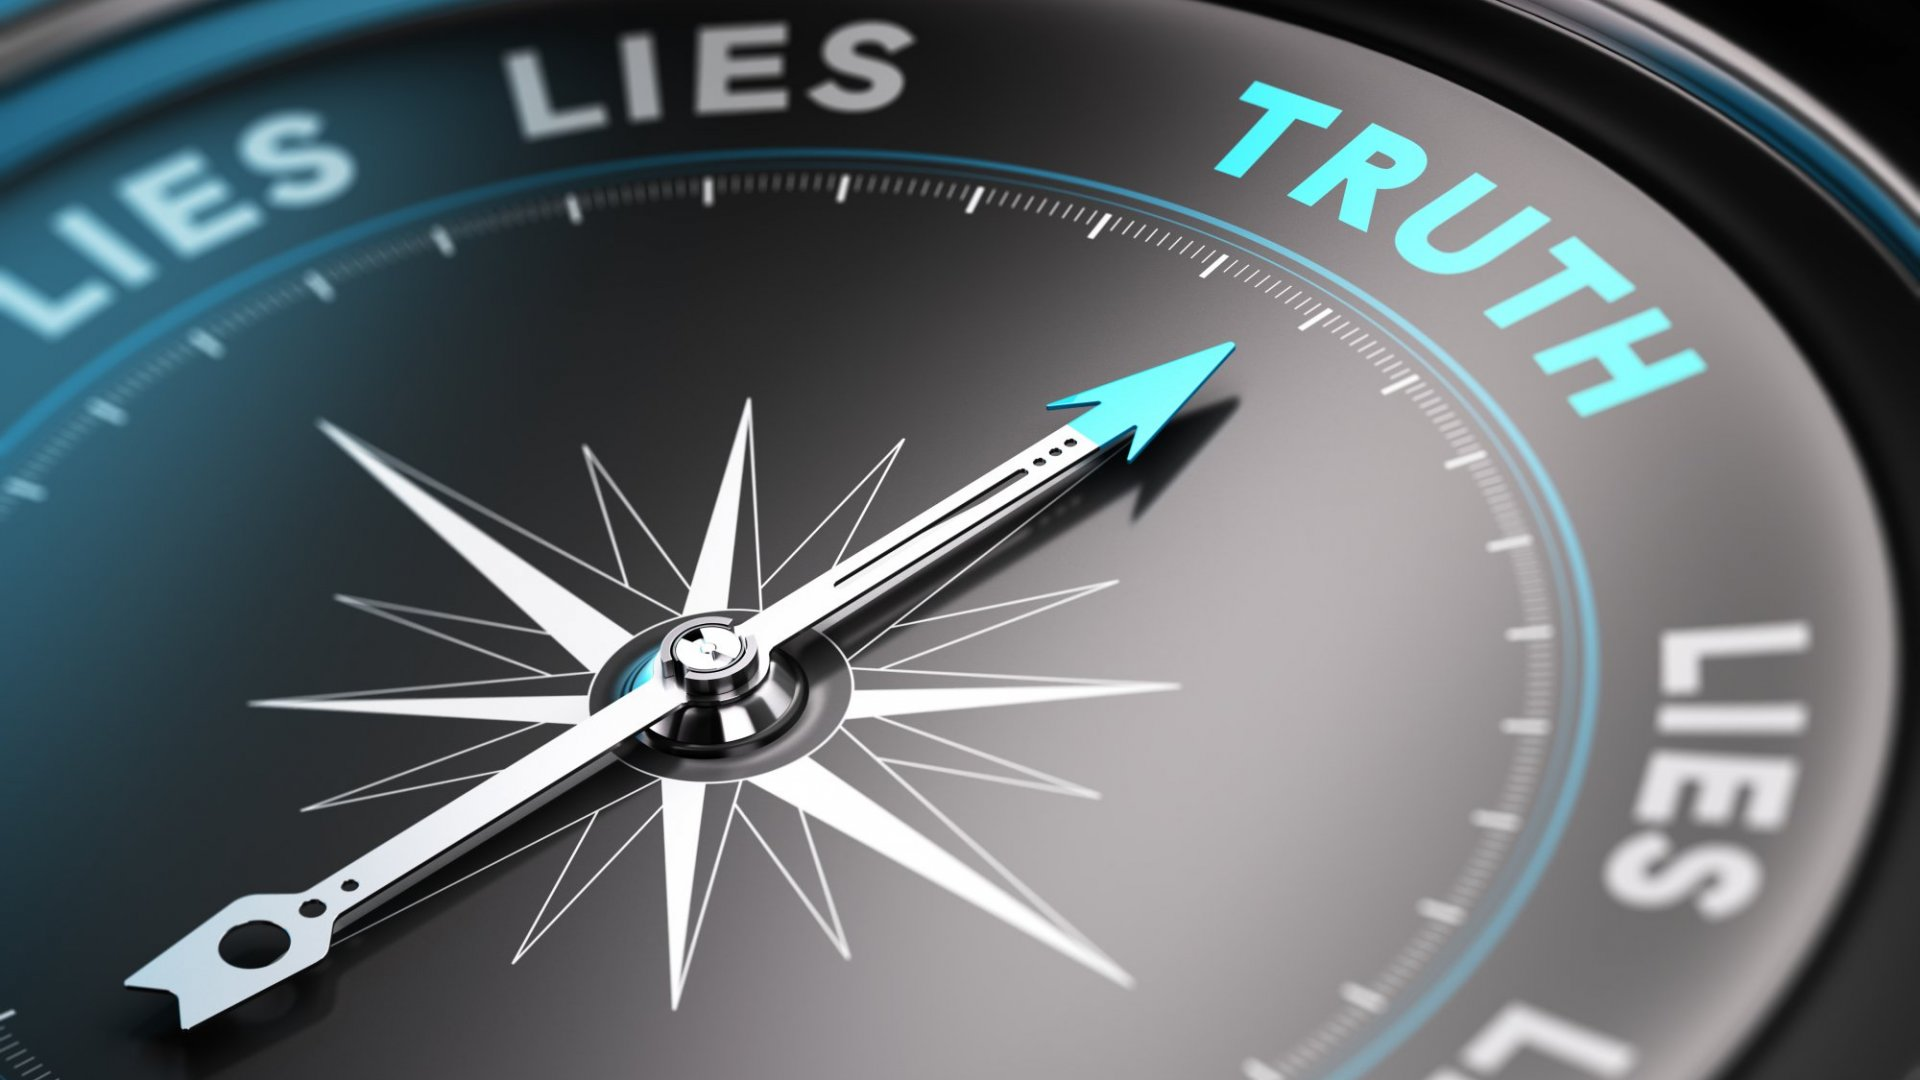 4 Important Rules About Telling the Truth | Inc.com